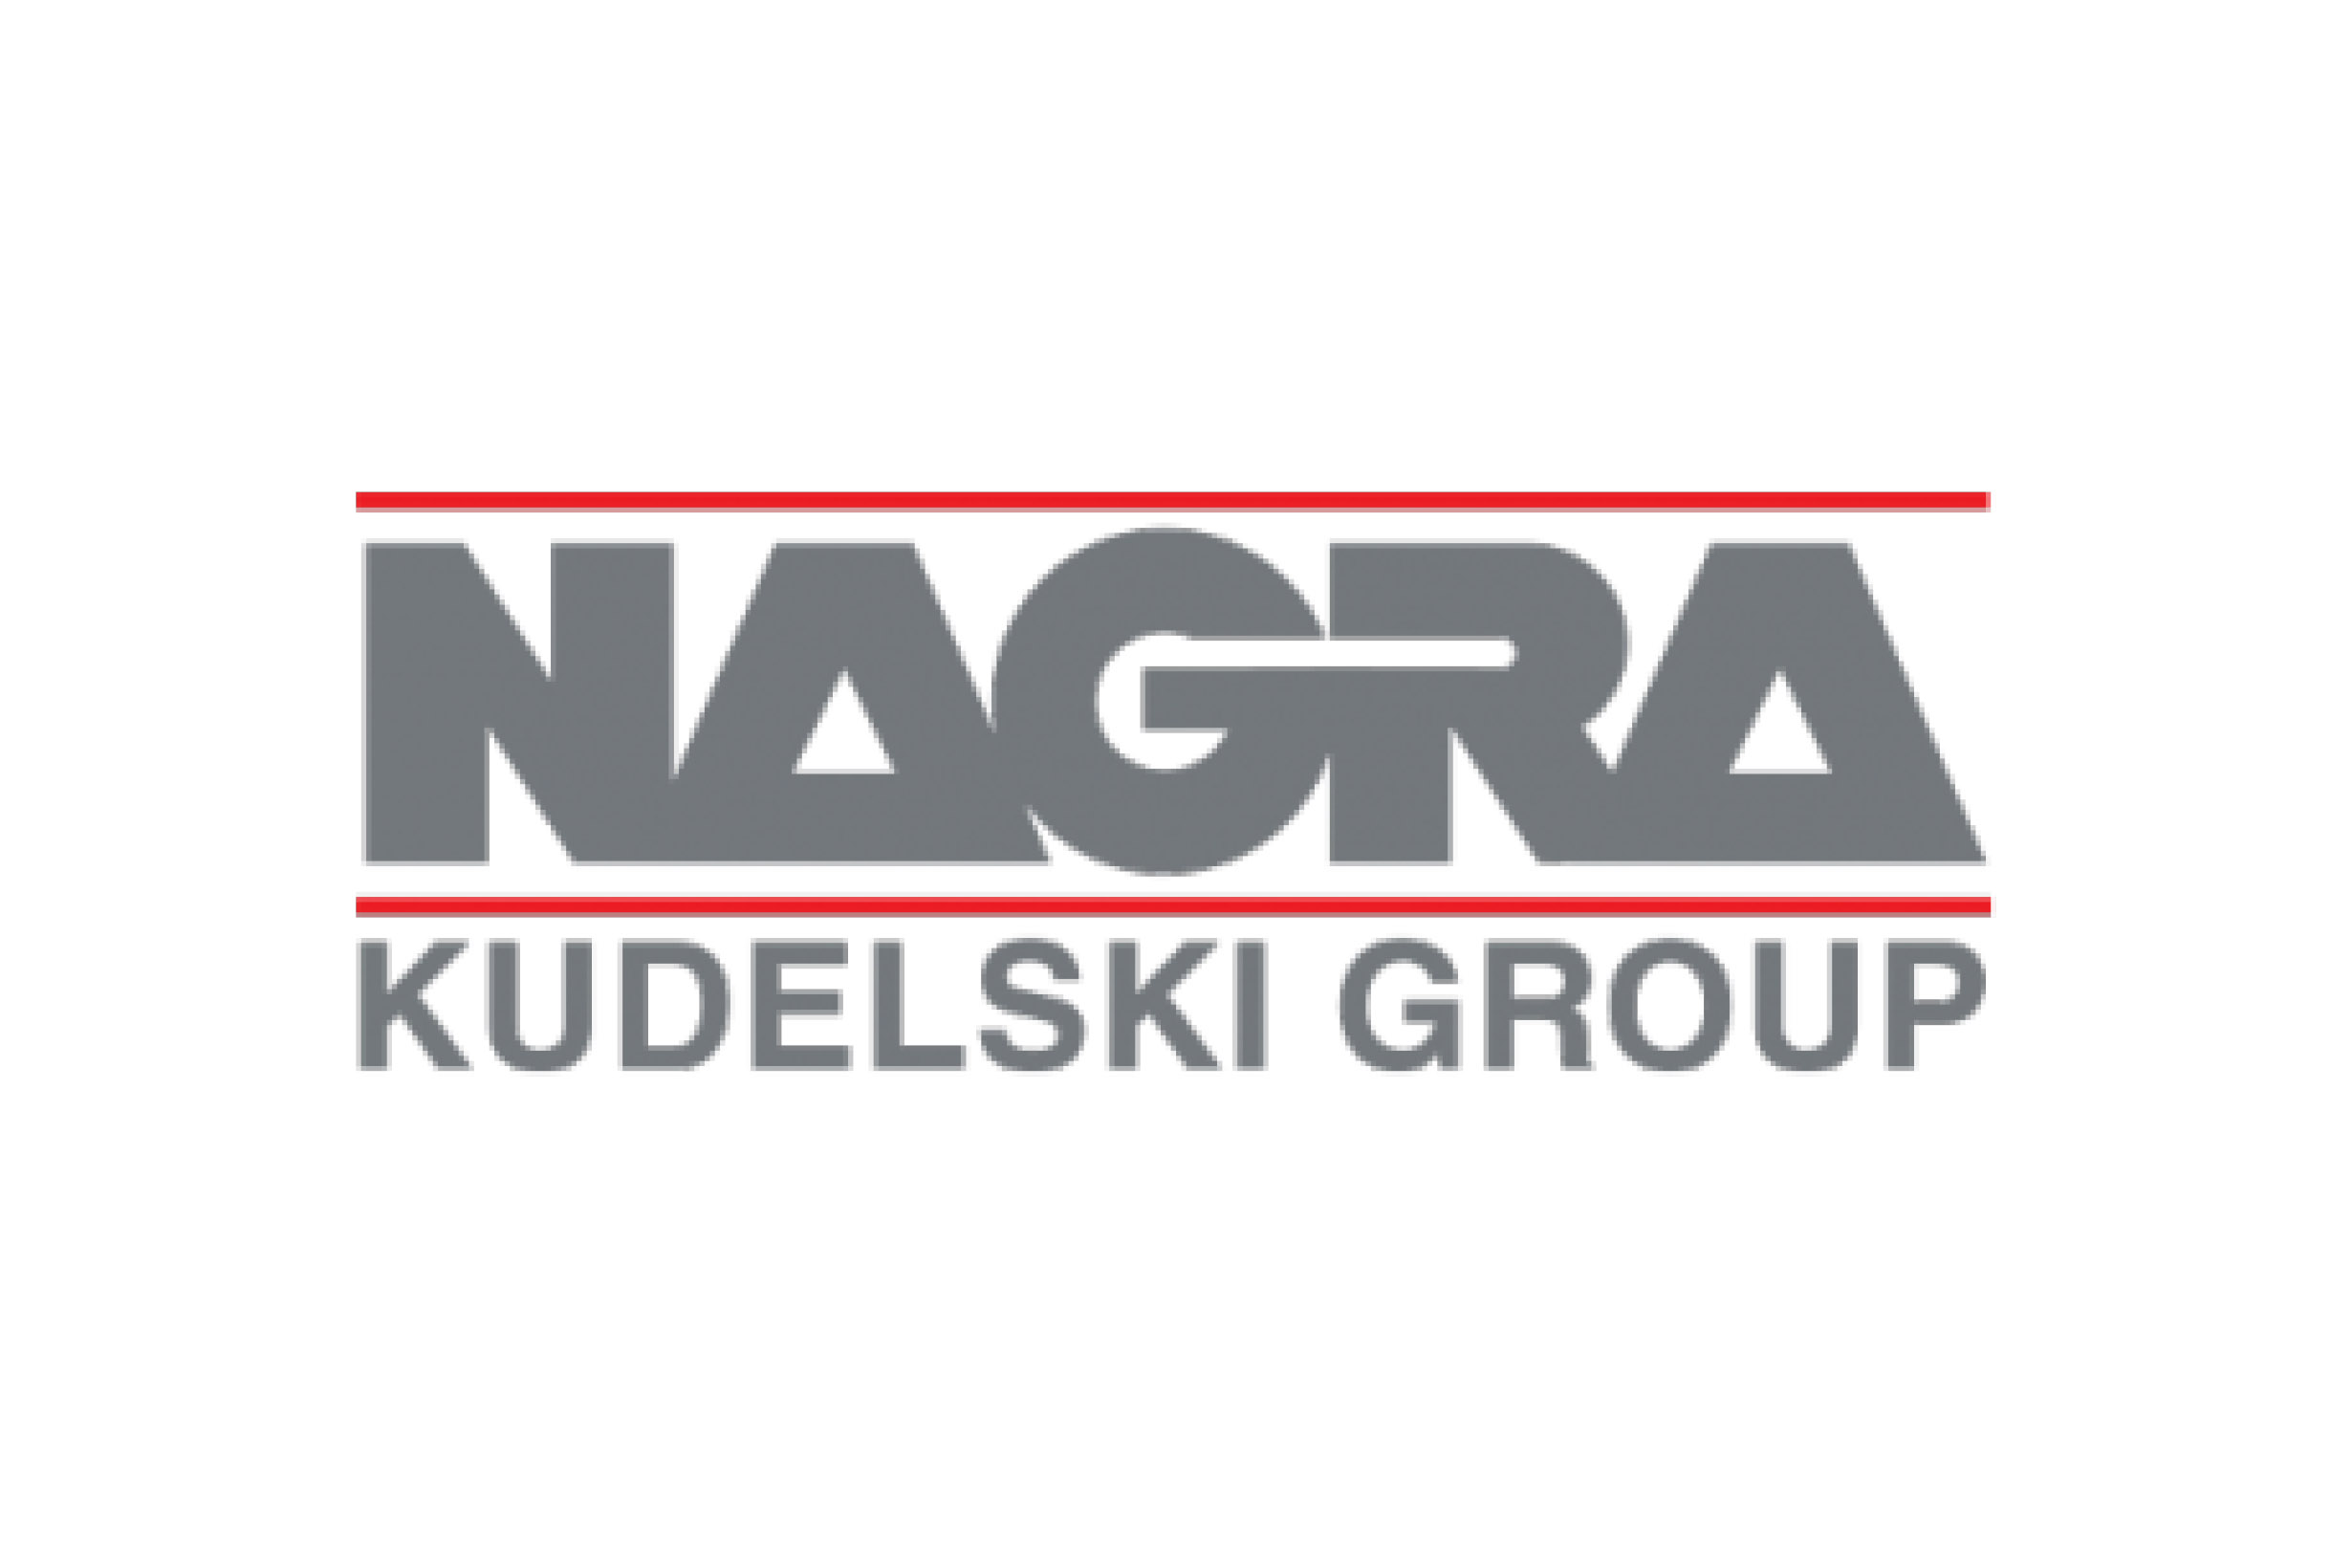 Kudelski Group Logo